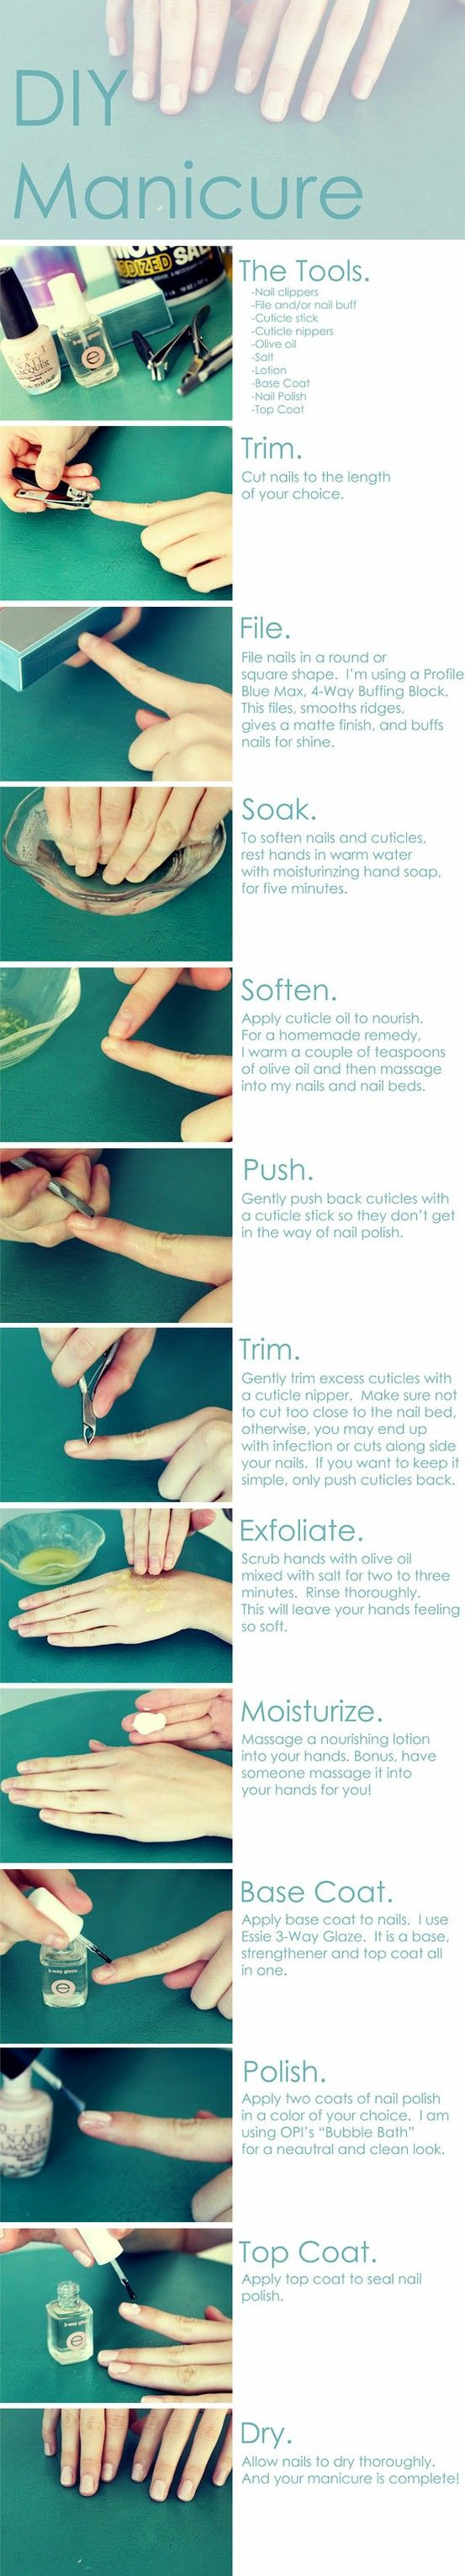 How To Do Nails Right Why Have I Never Seen This Before